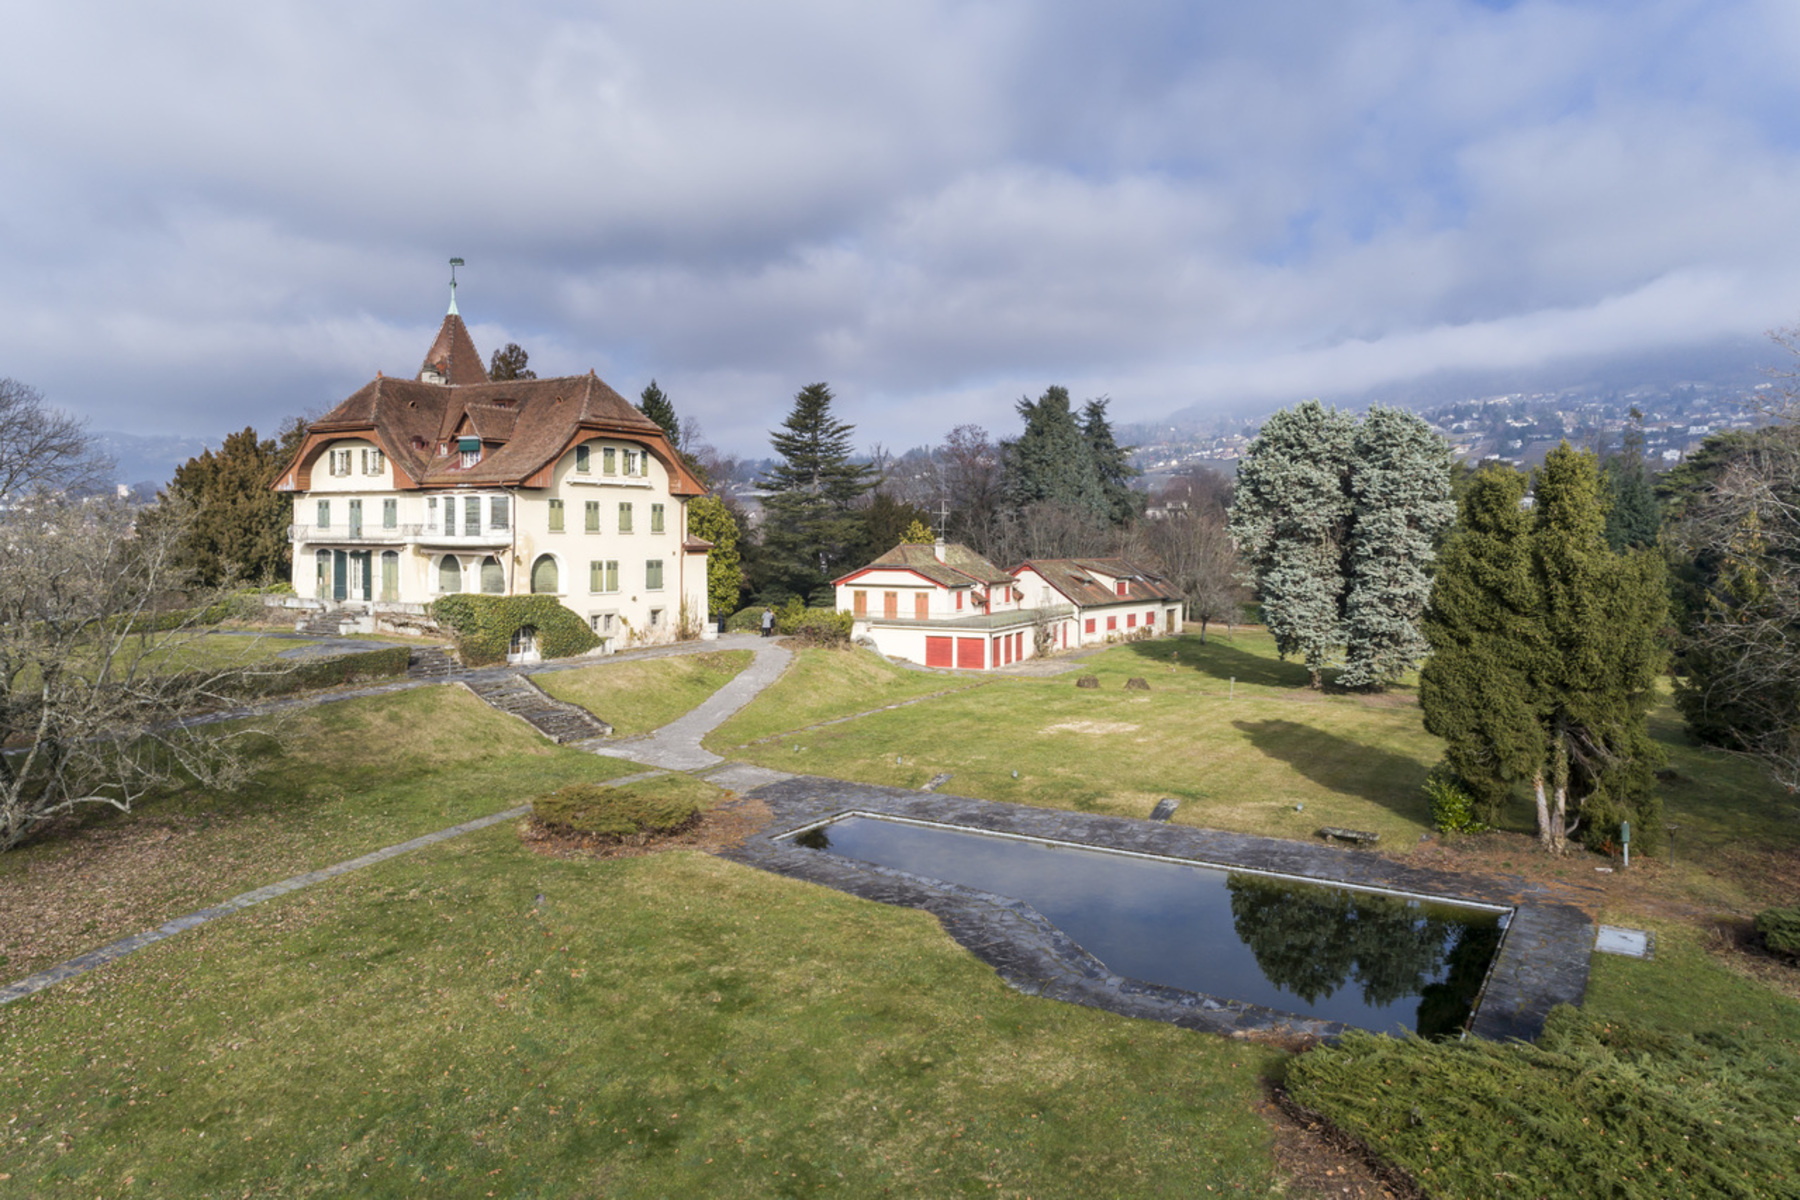 Single Family Homes のために 売買 アット Mansion situated amid extensive leafy grounds Clarens / Montreux Montreux, ヴォー 1820 スイス